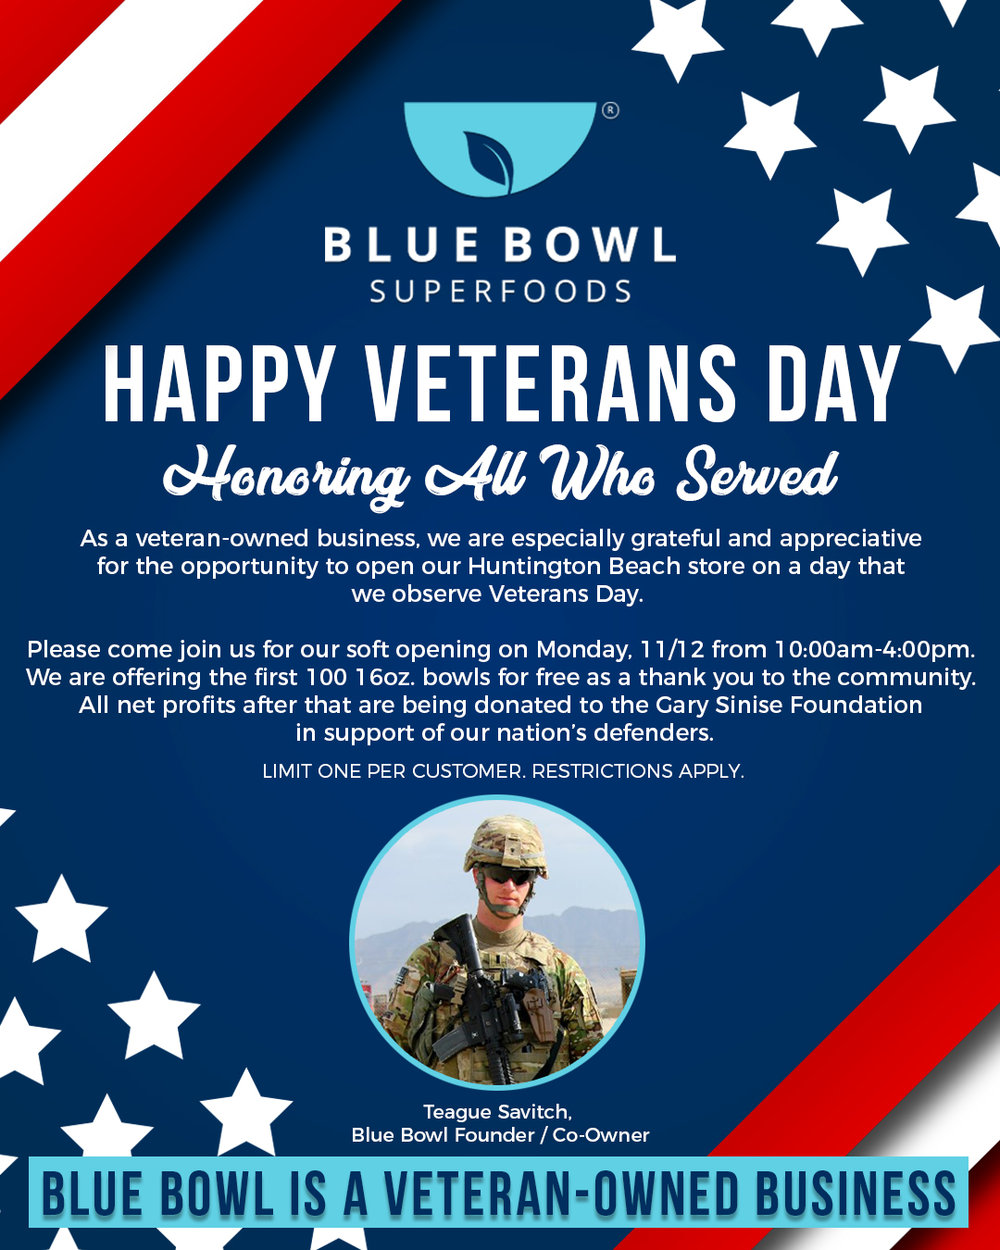 BlueBowl-IG-VeteransDay.jpg